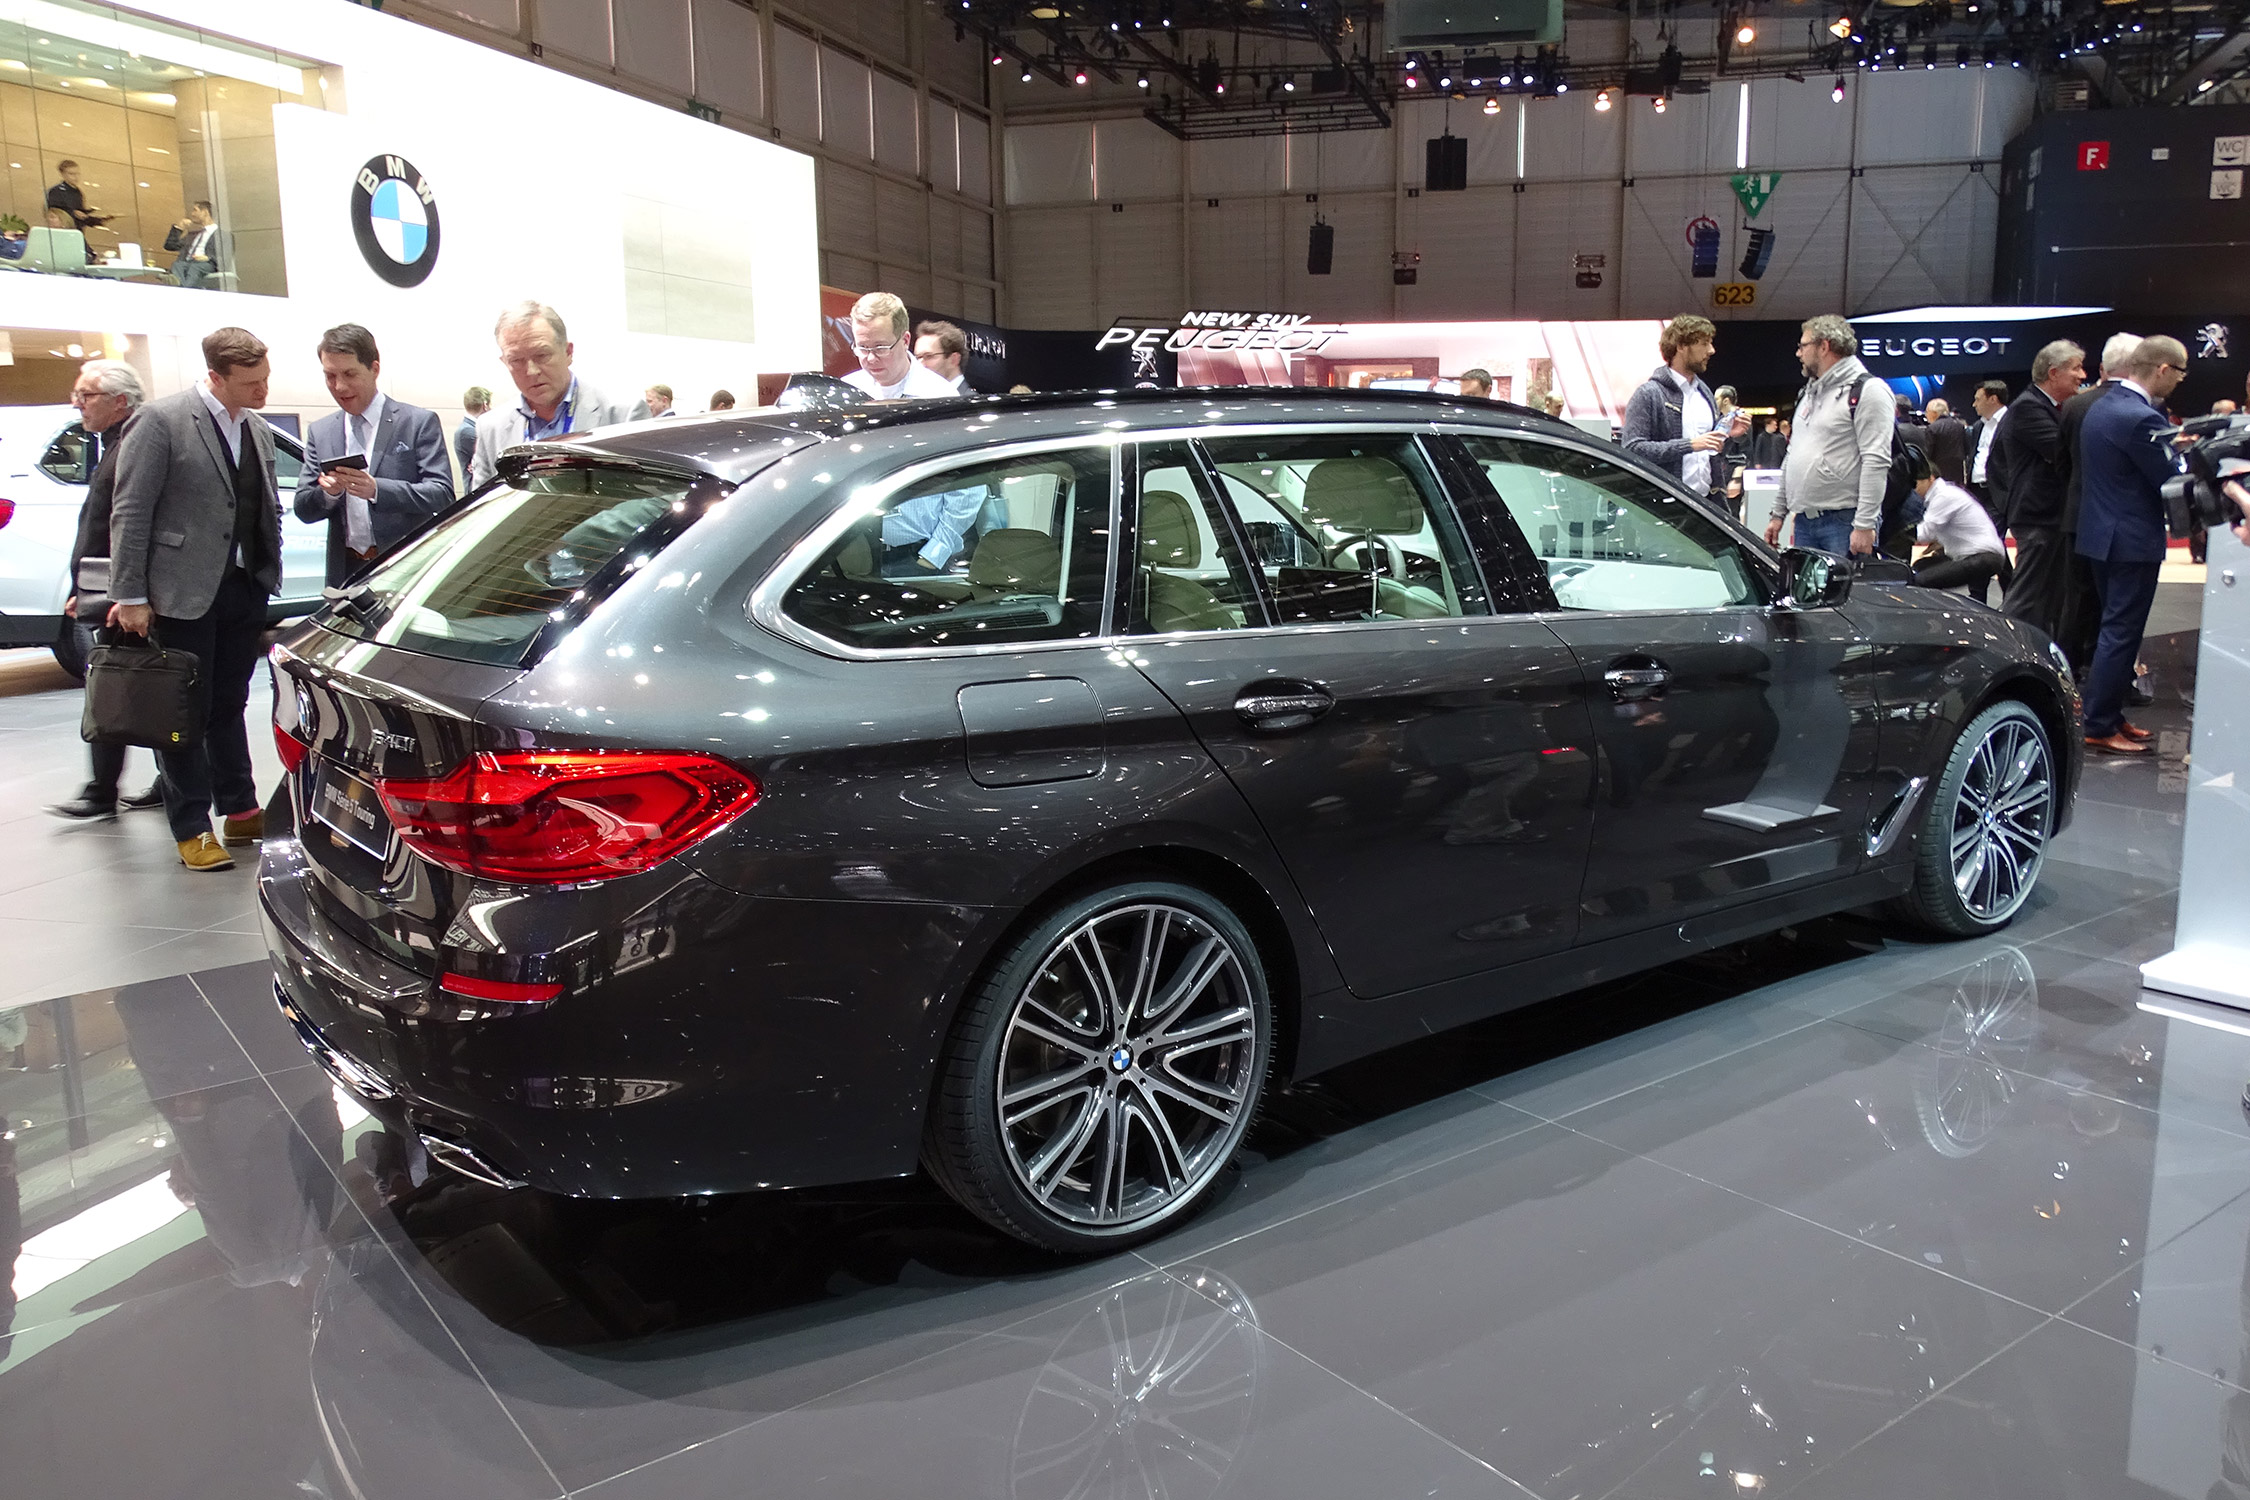 Bmw S 233 Rie 5 Touring G31 Salon De Gen 232 Ve 2017